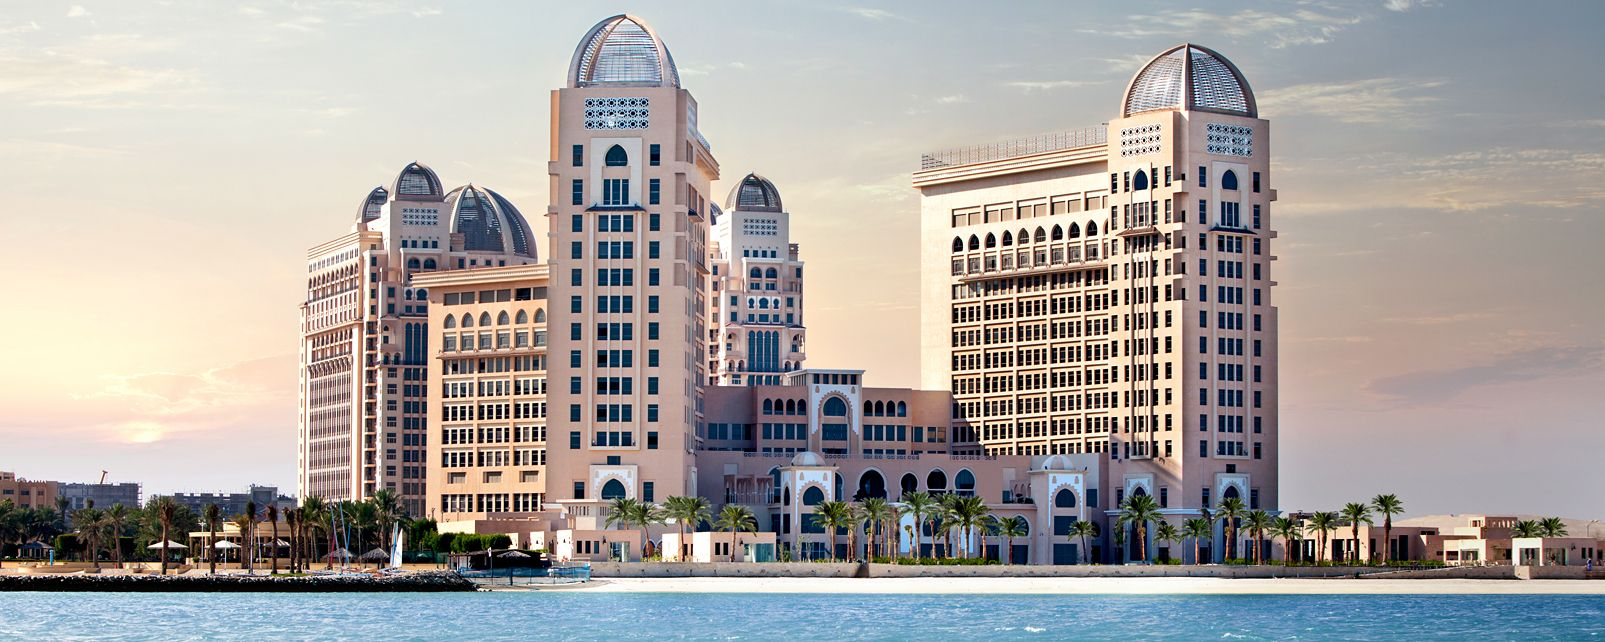 Hôtel The St Regis Doha